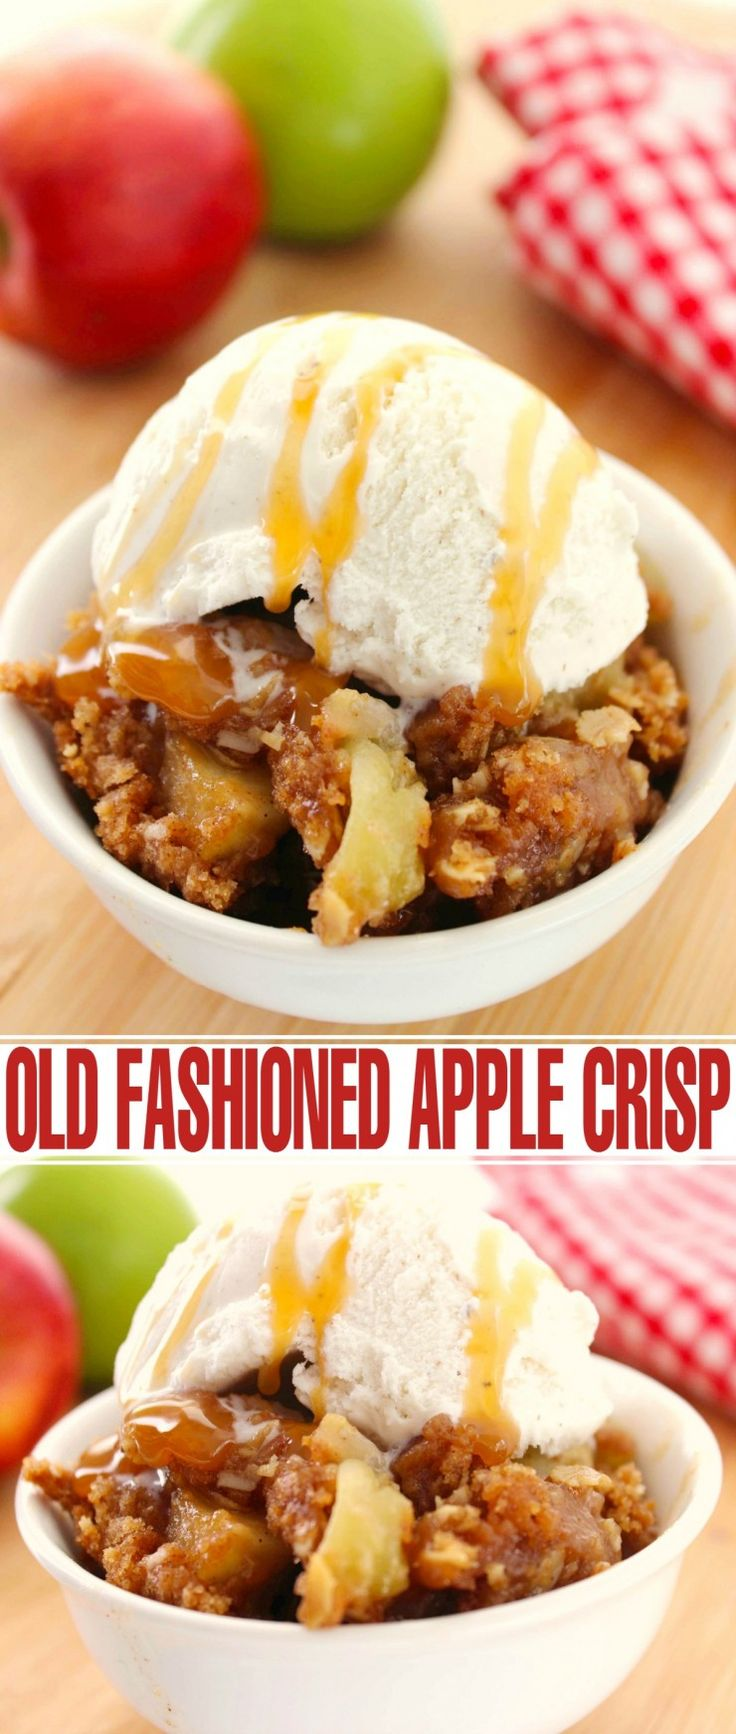 This Old Fashioned Apple Crisp recipe is definitely the best of the best.  Sweet slightly spiced apples topped with an amazing